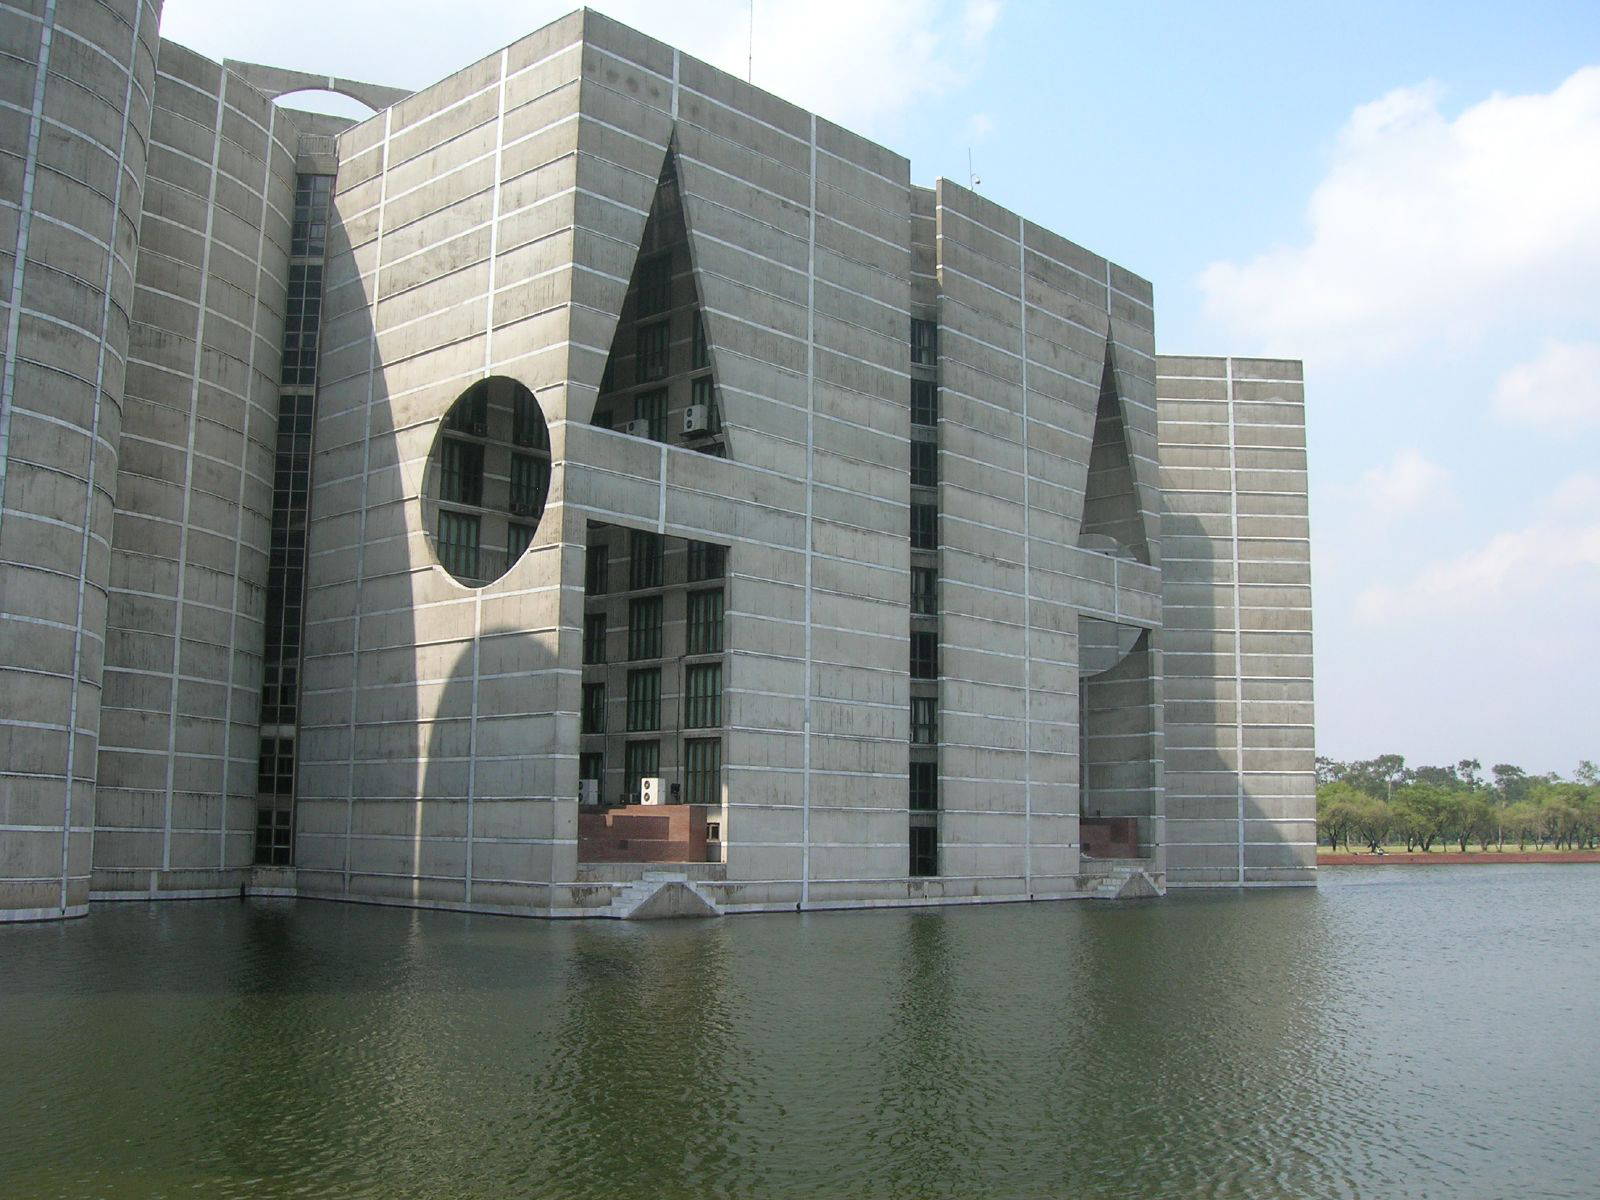 The modernist Jatiya Sangsad Bhaban or National Parliament House of Bangladesh, designed by Louis Kahn and Muzharul Islam